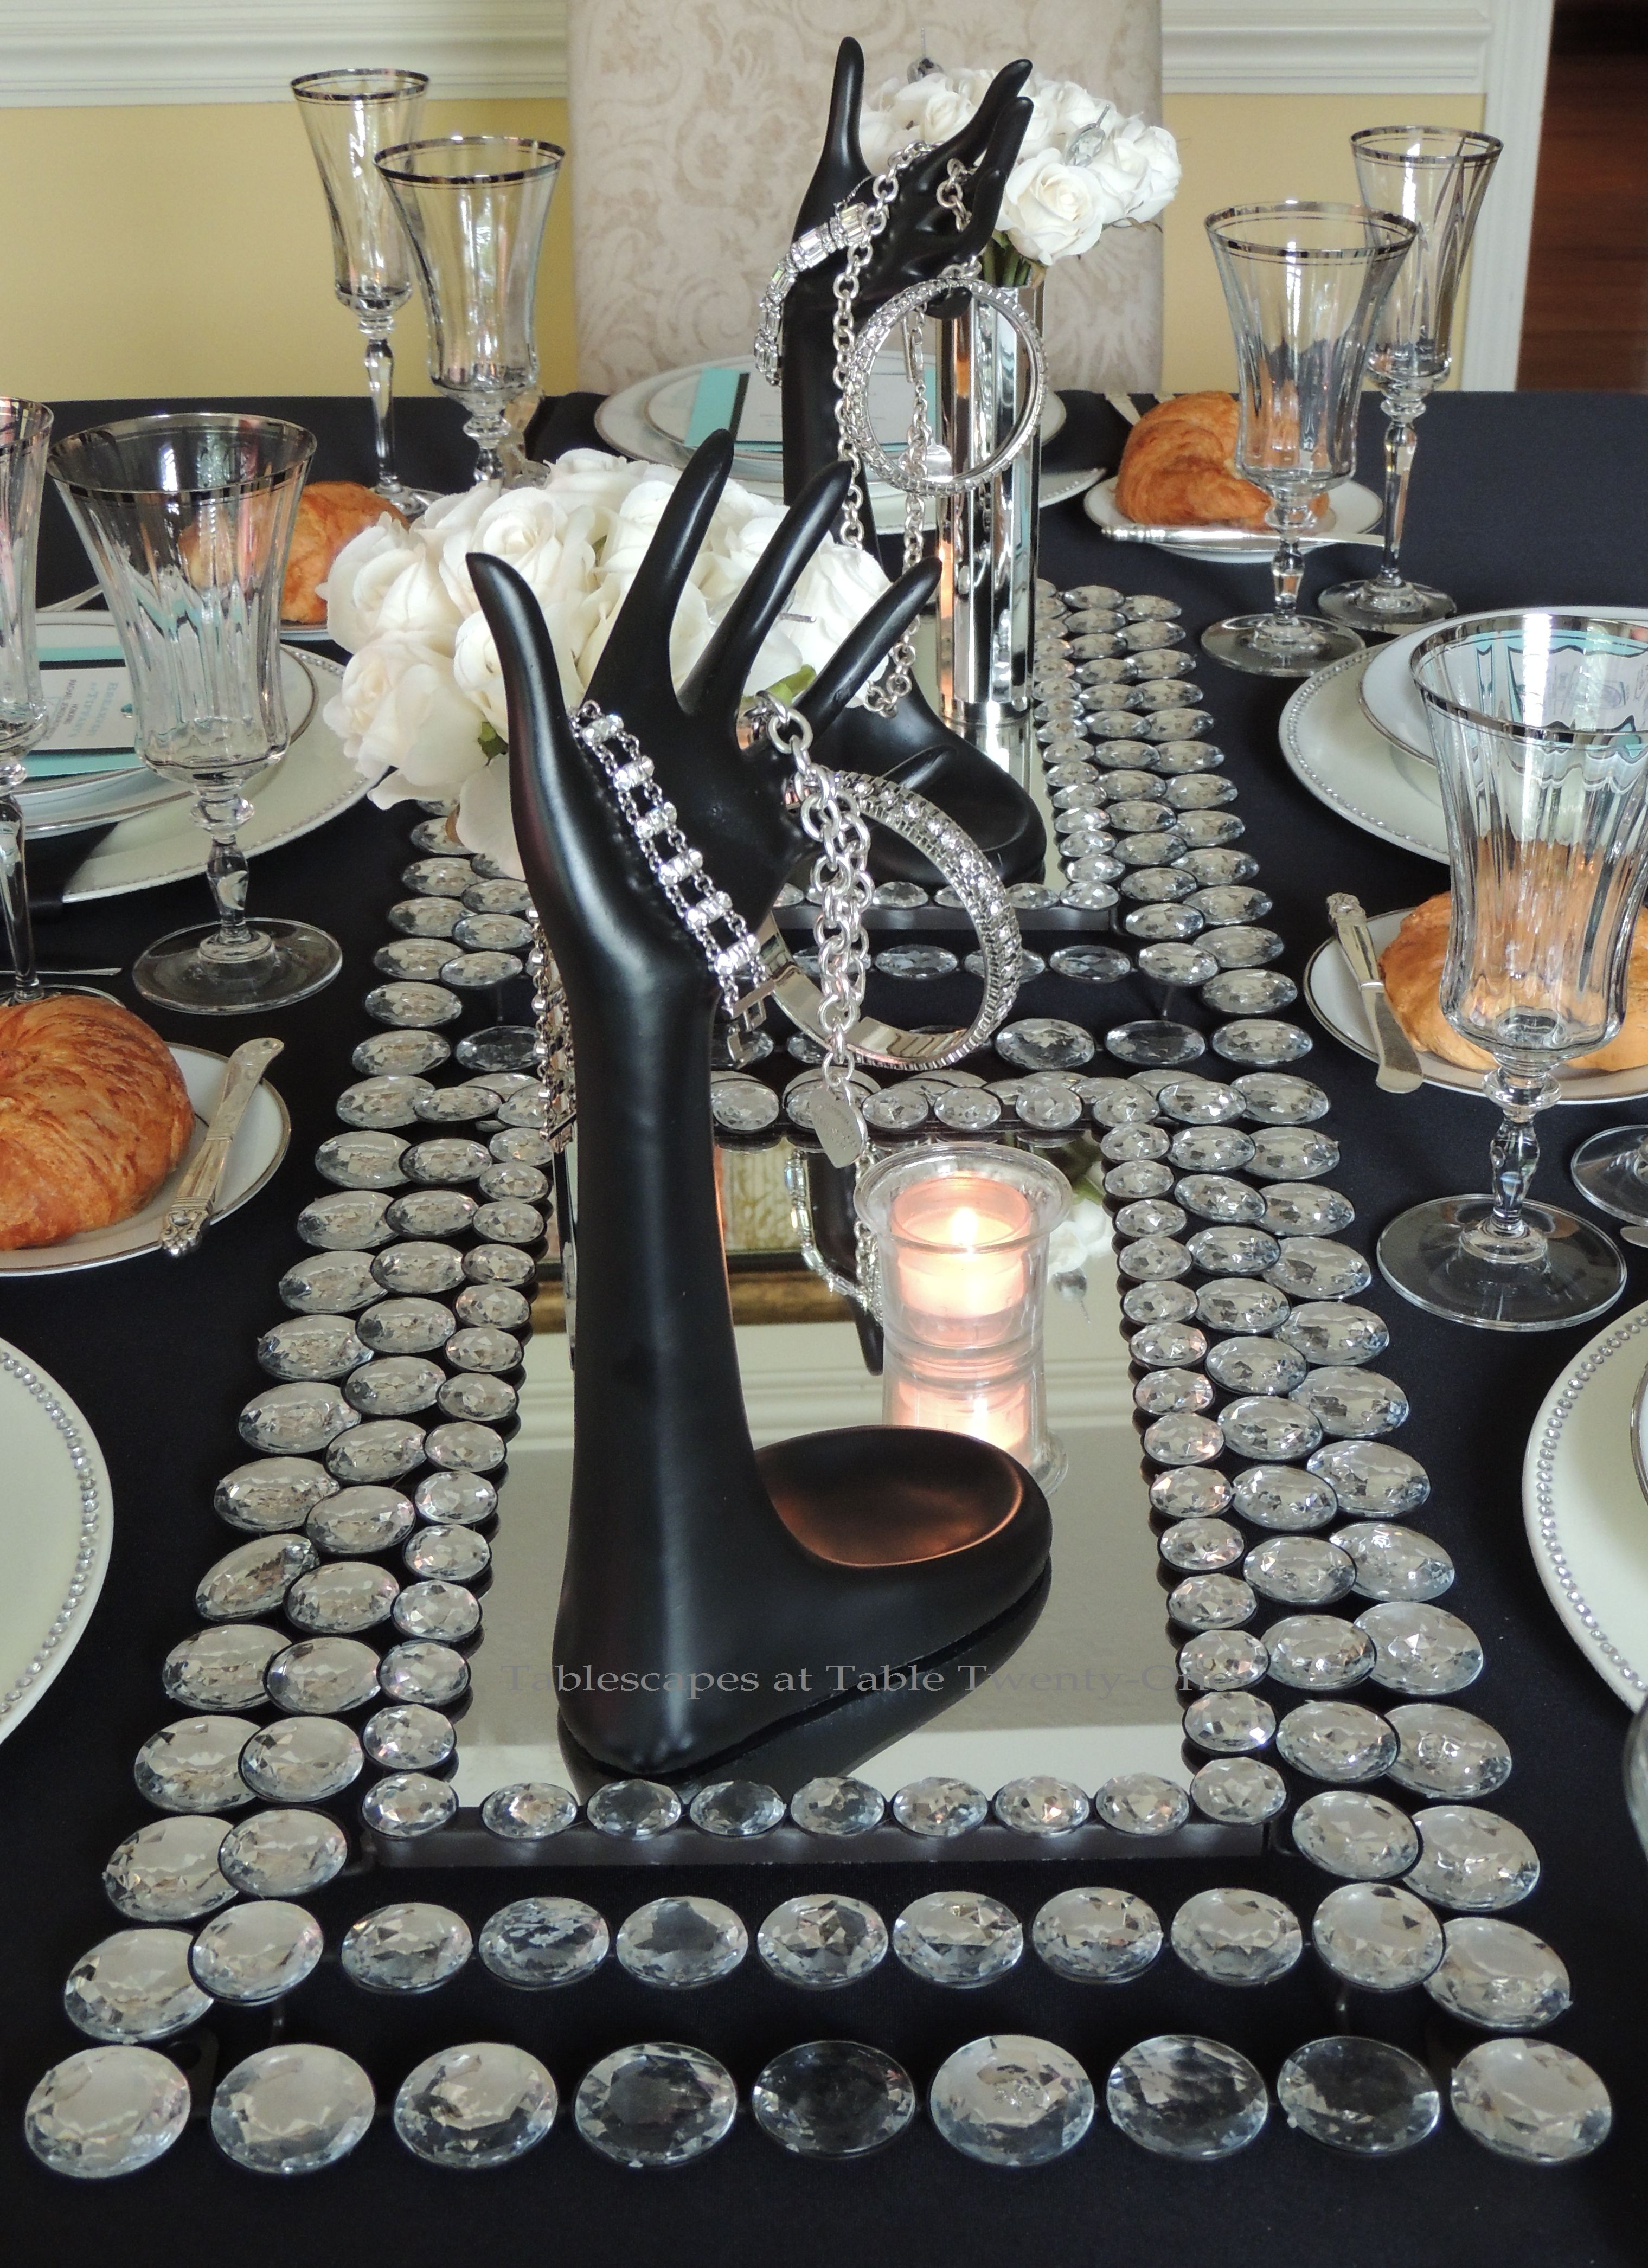 Tablescapes at table twenty one breakfast at tiffany s for Breakfast table centerpiece